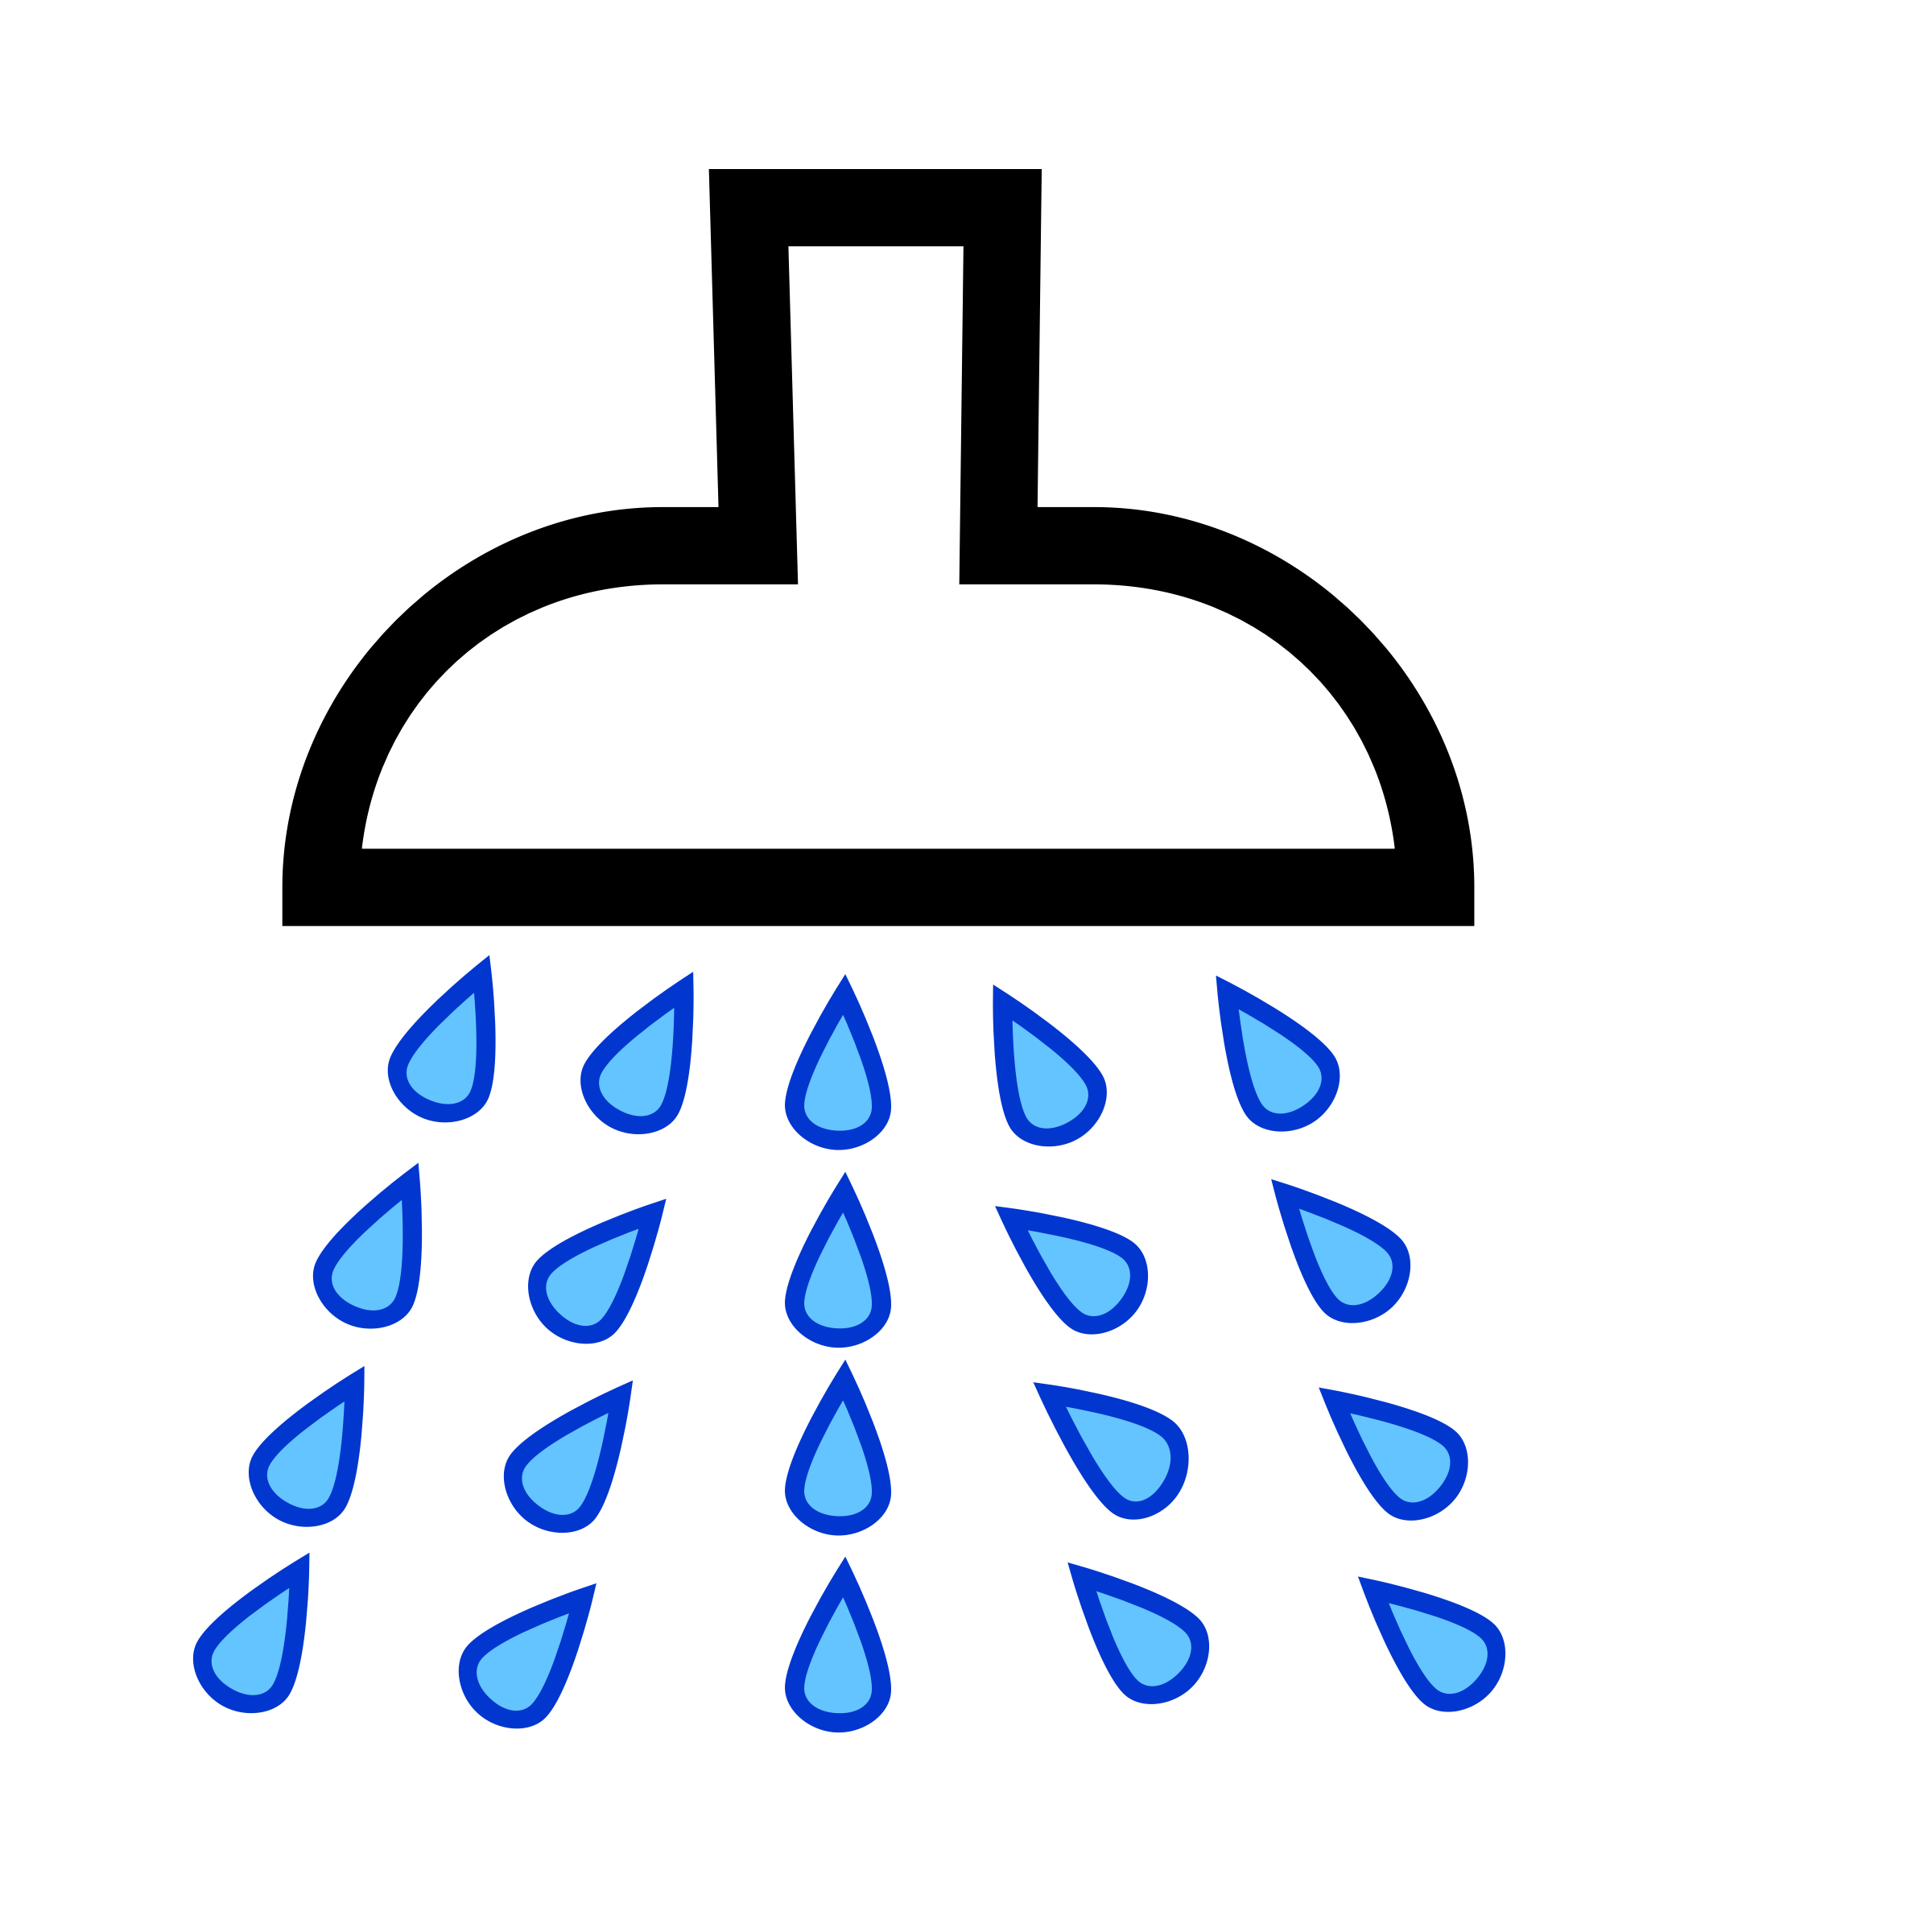 Shower clip art free picture freeuse Shower Clipart & Shower Clip Art Images - ClipartALL.com picture freeuse